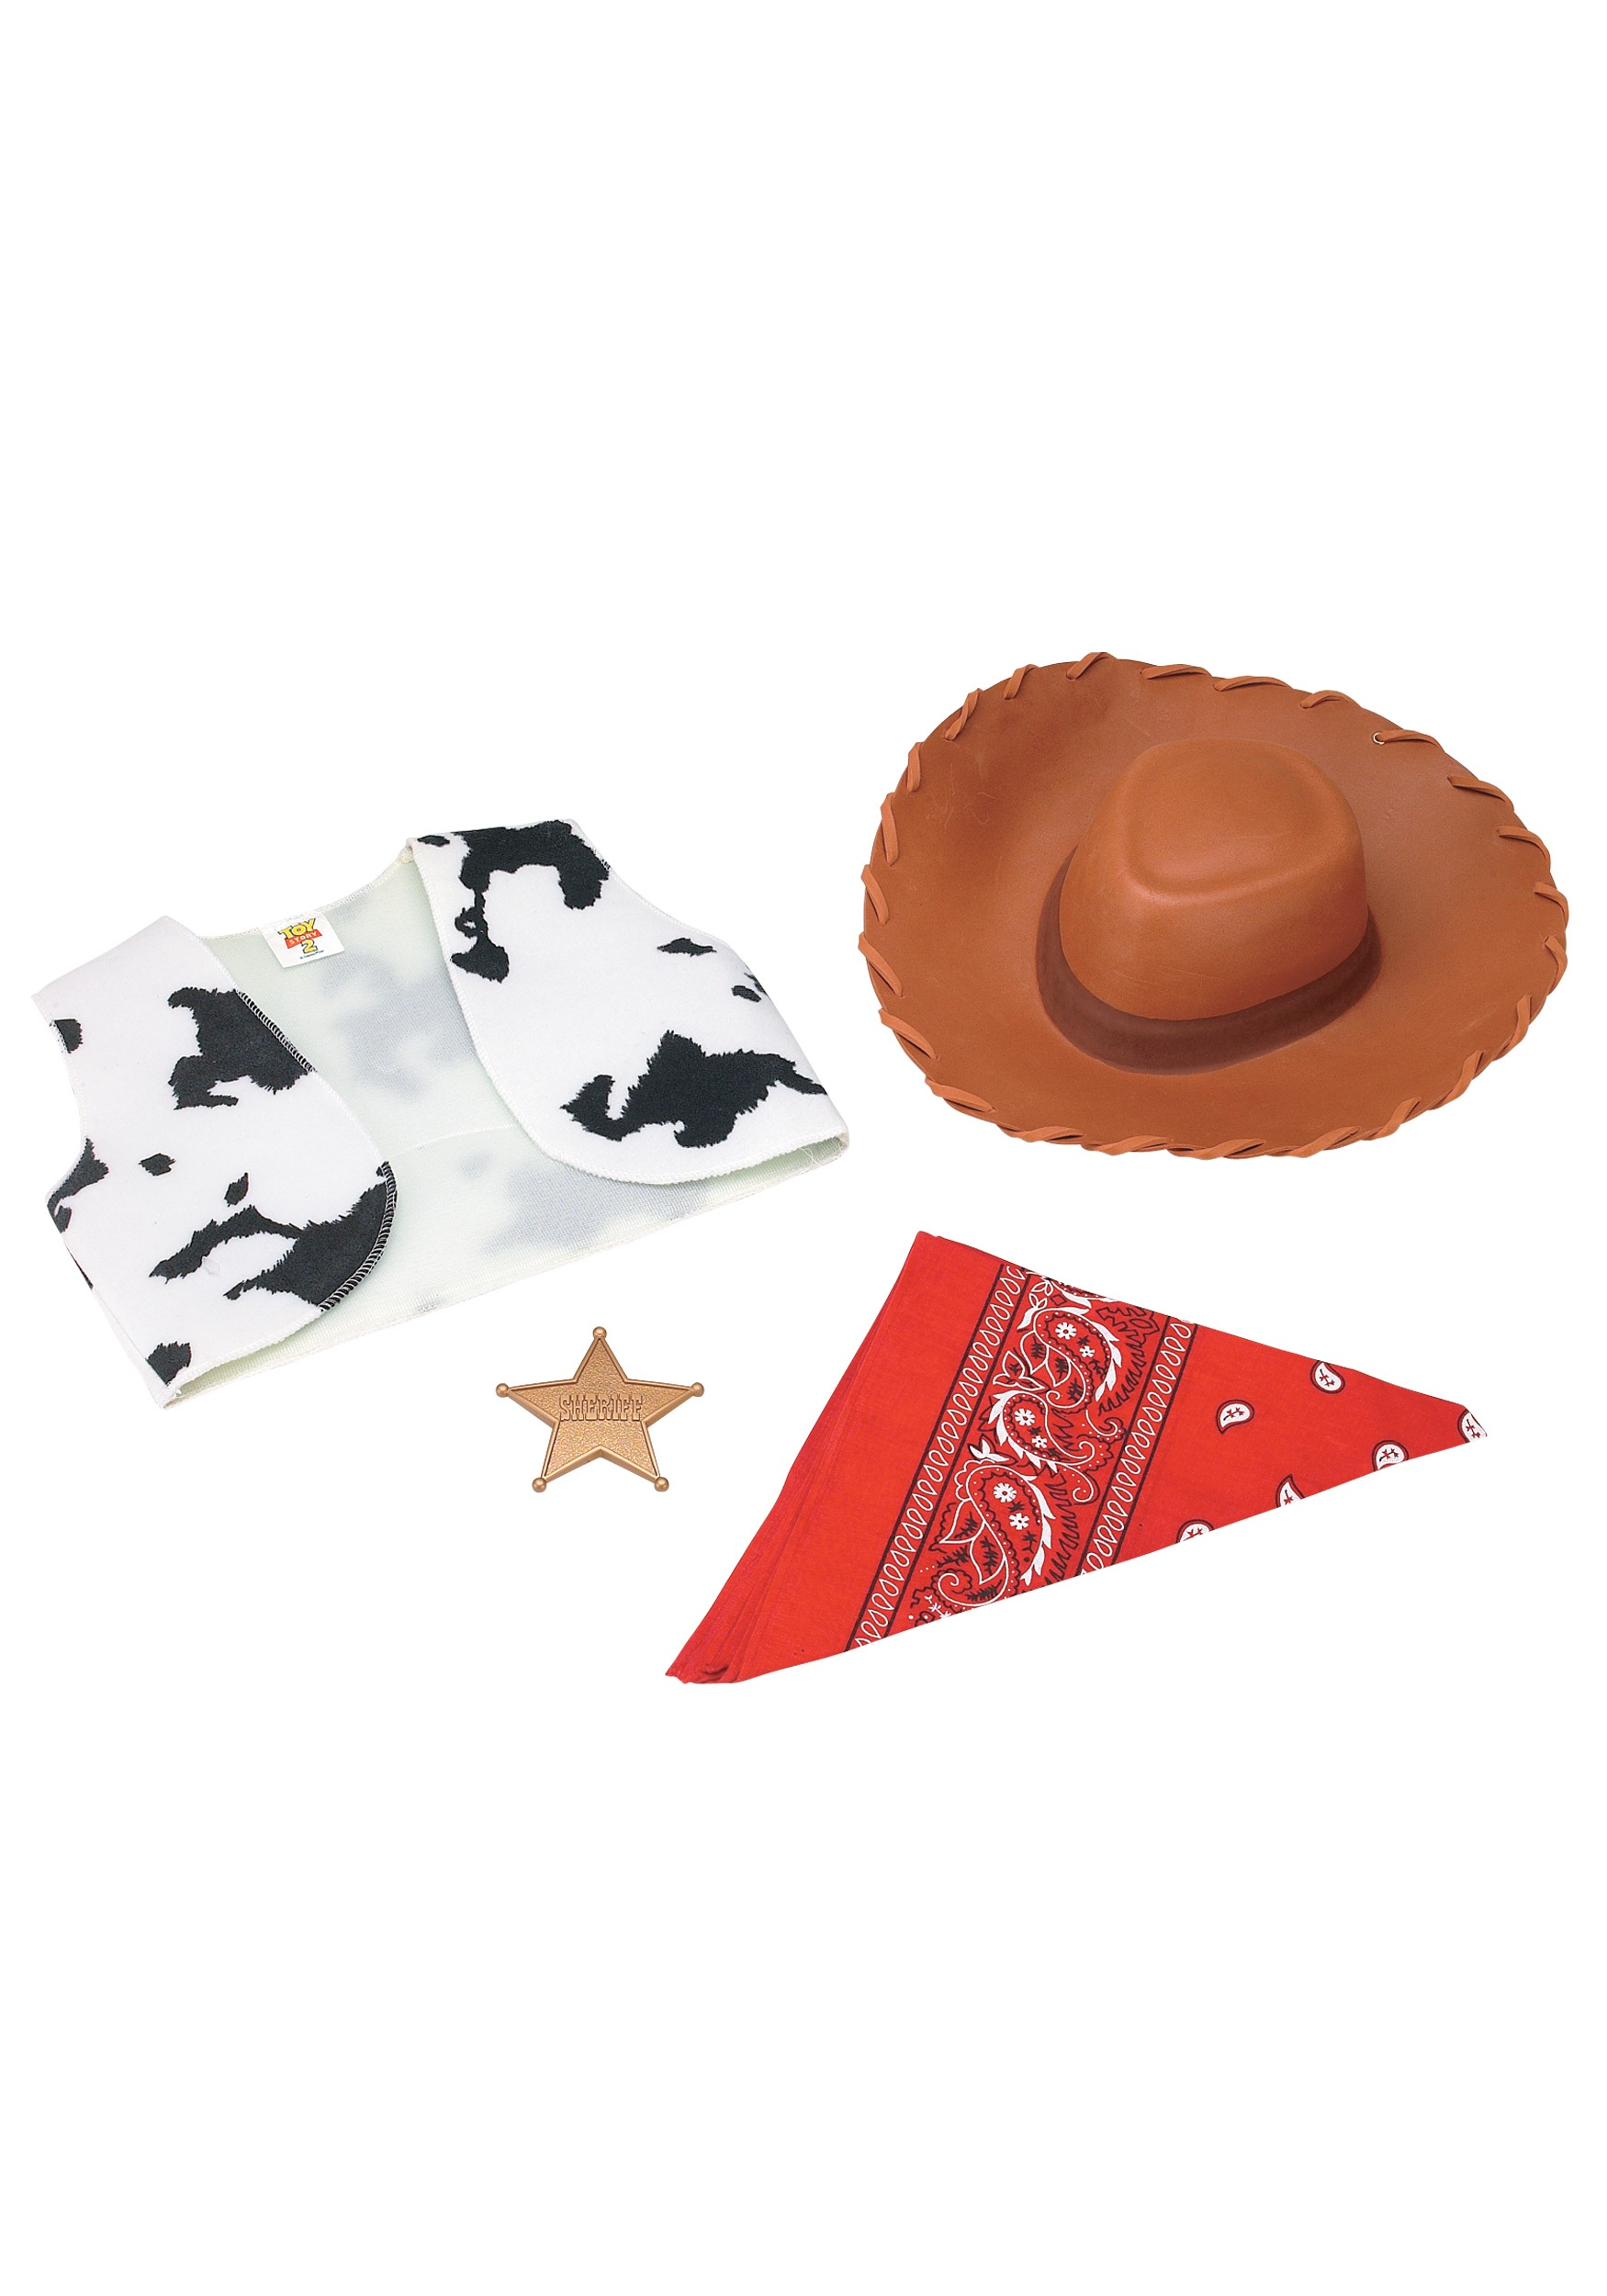 Become the sheriff of Andy's toys with this Toy Story Woody costume kit!